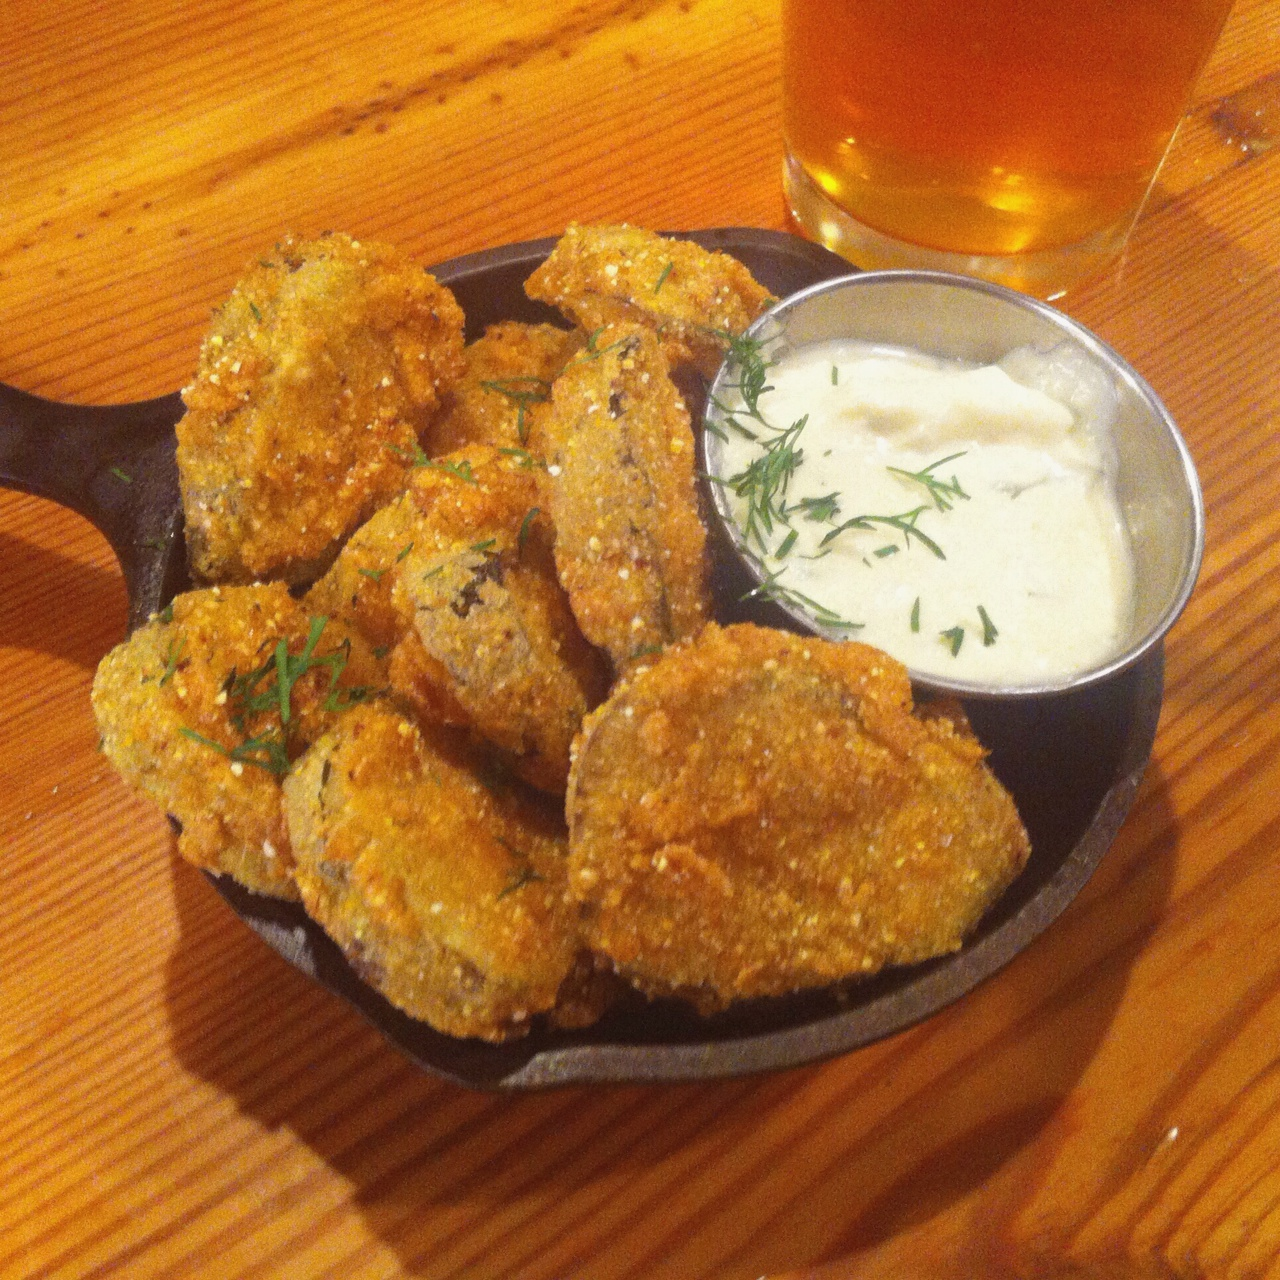 Fried Hop Pickles - The Pickle Shack, Brooklyn